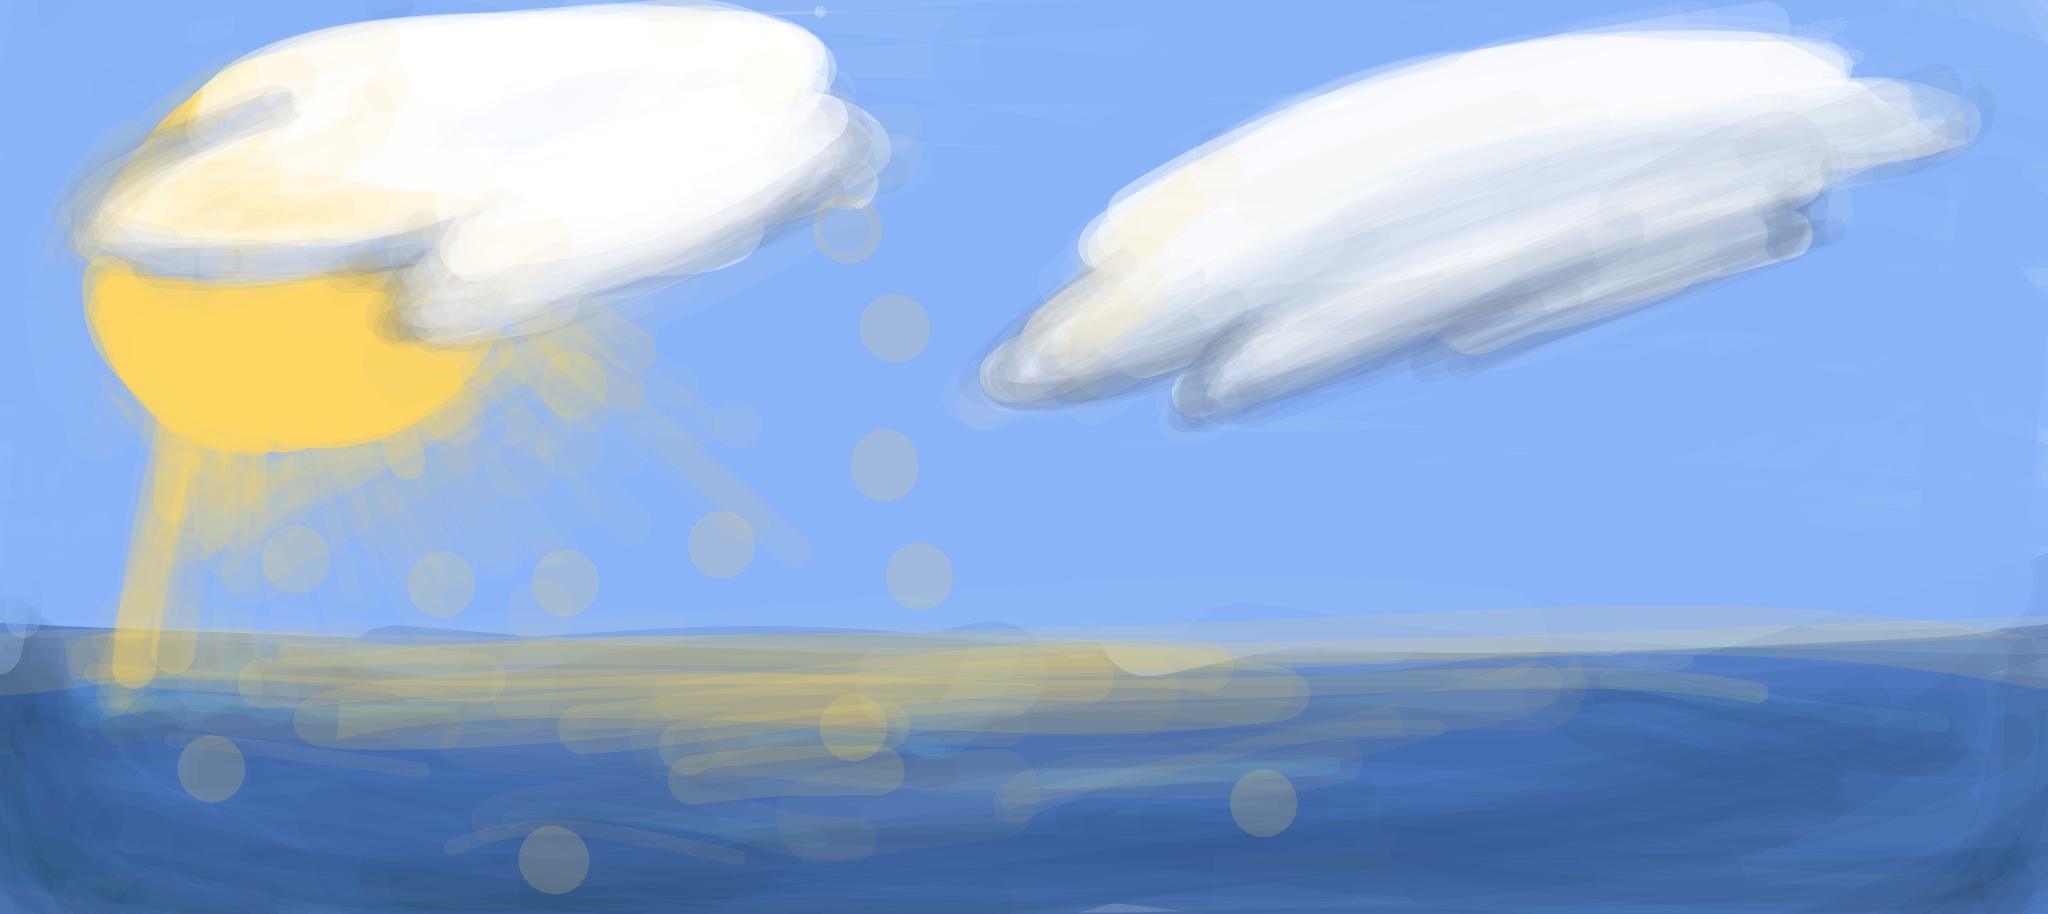 Image of a partly sunny day in the ocean. This was created by a middle school student using Chrome Canvas.